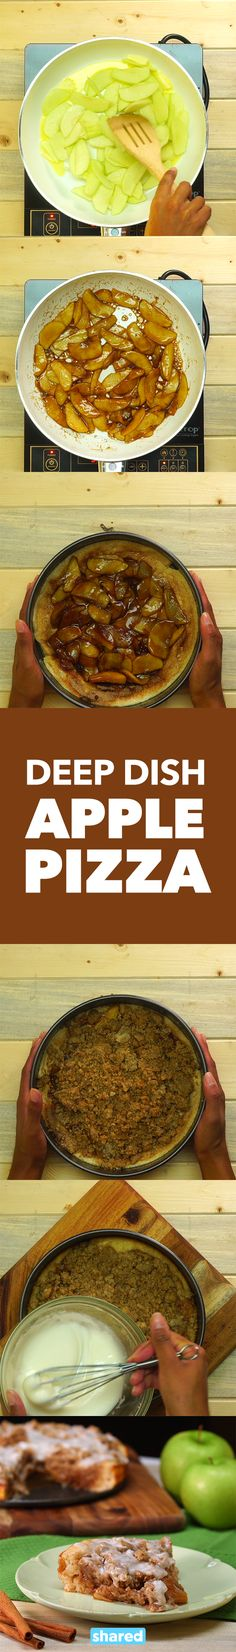 Deep Dish Apple Pizza